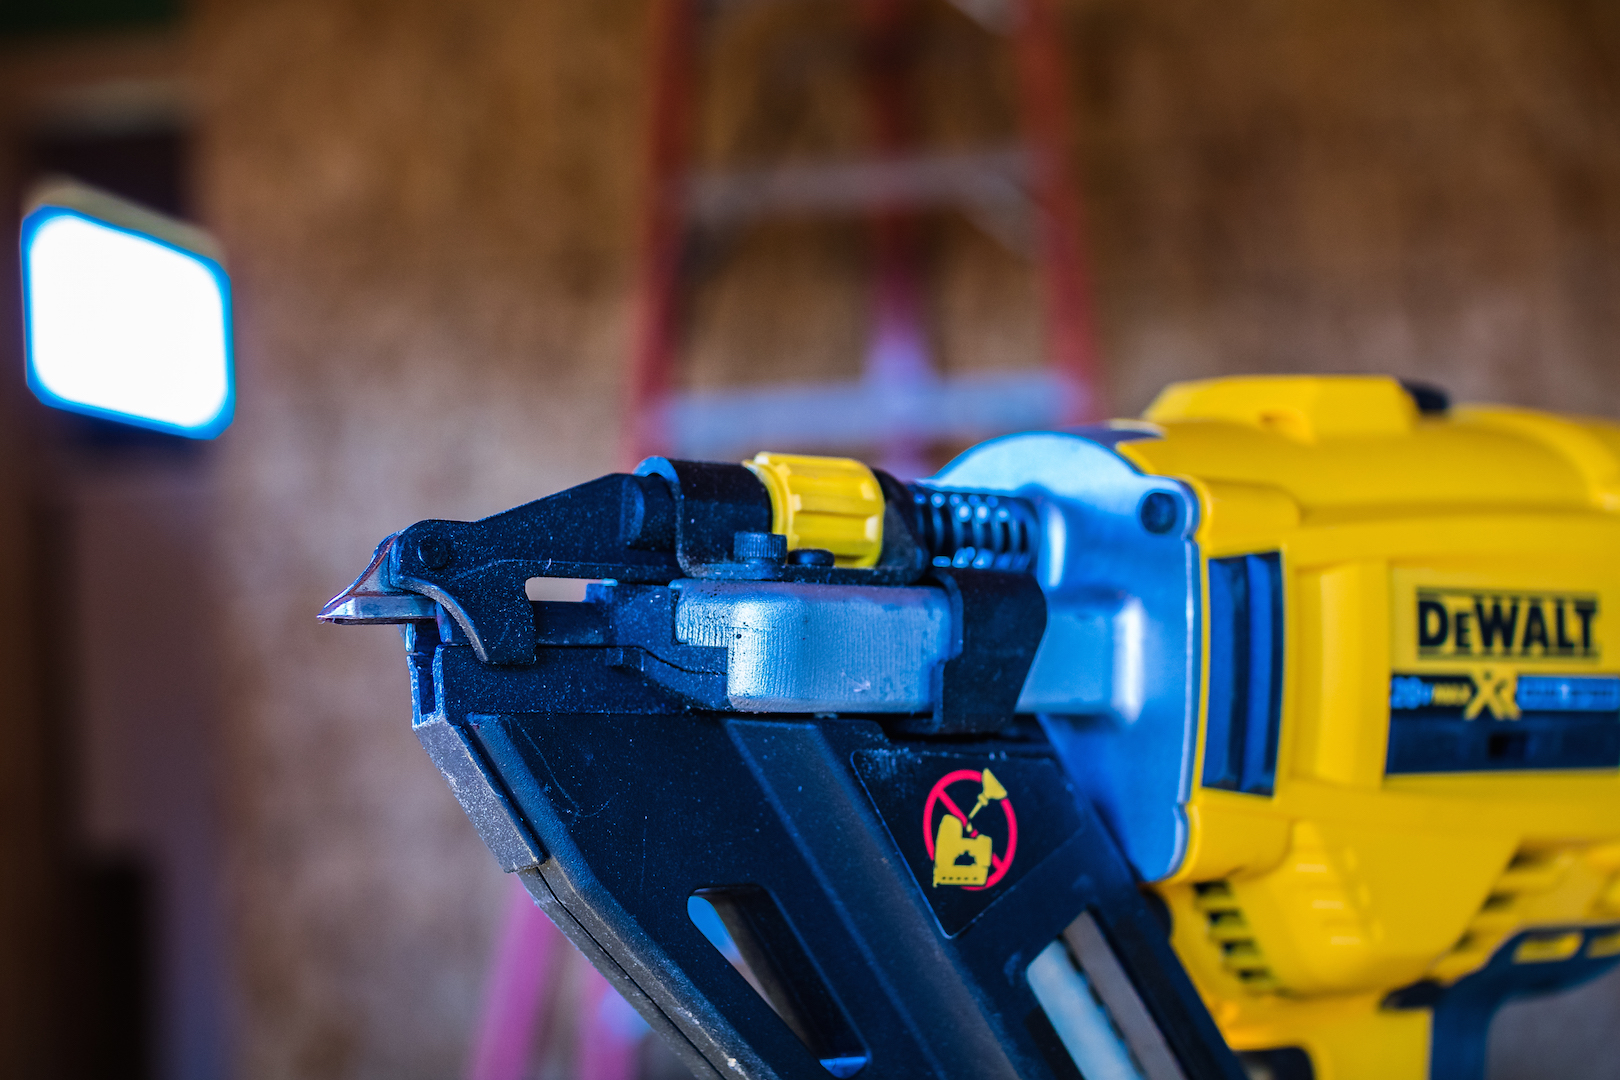 Dewalt Cordless Positive Placement Nailer Tools Of The Trade